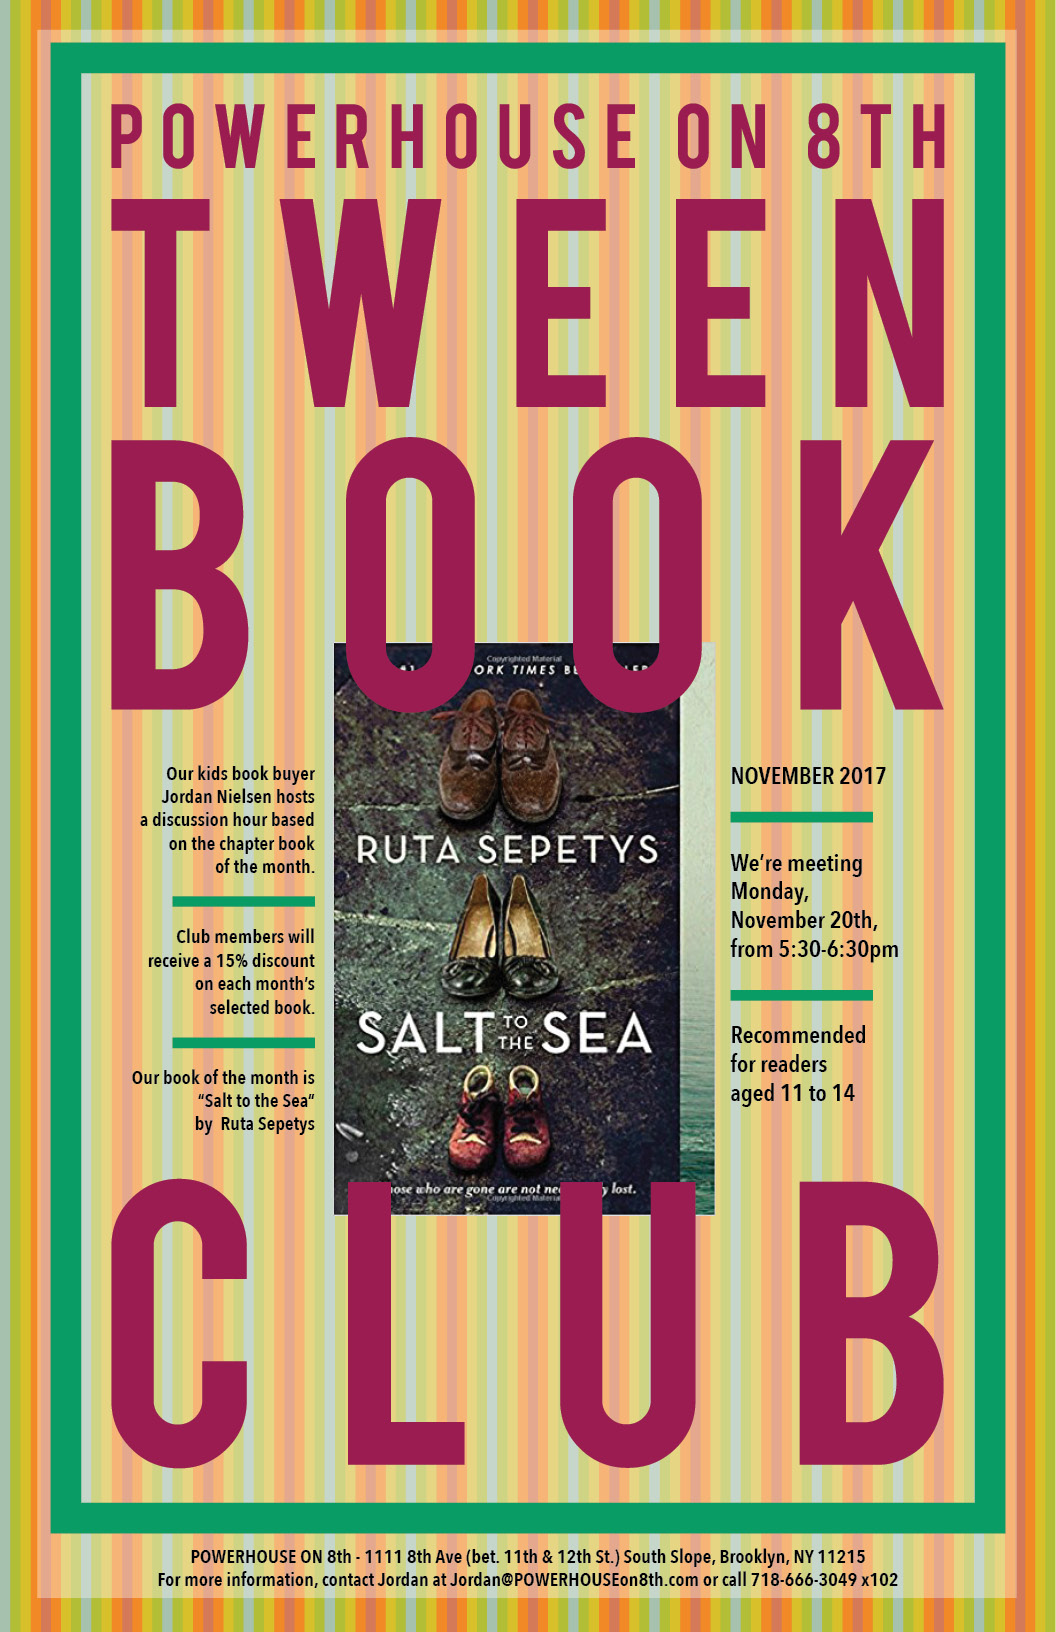 Tween Book Club: Salt to the Sea by Ruta Sepetys